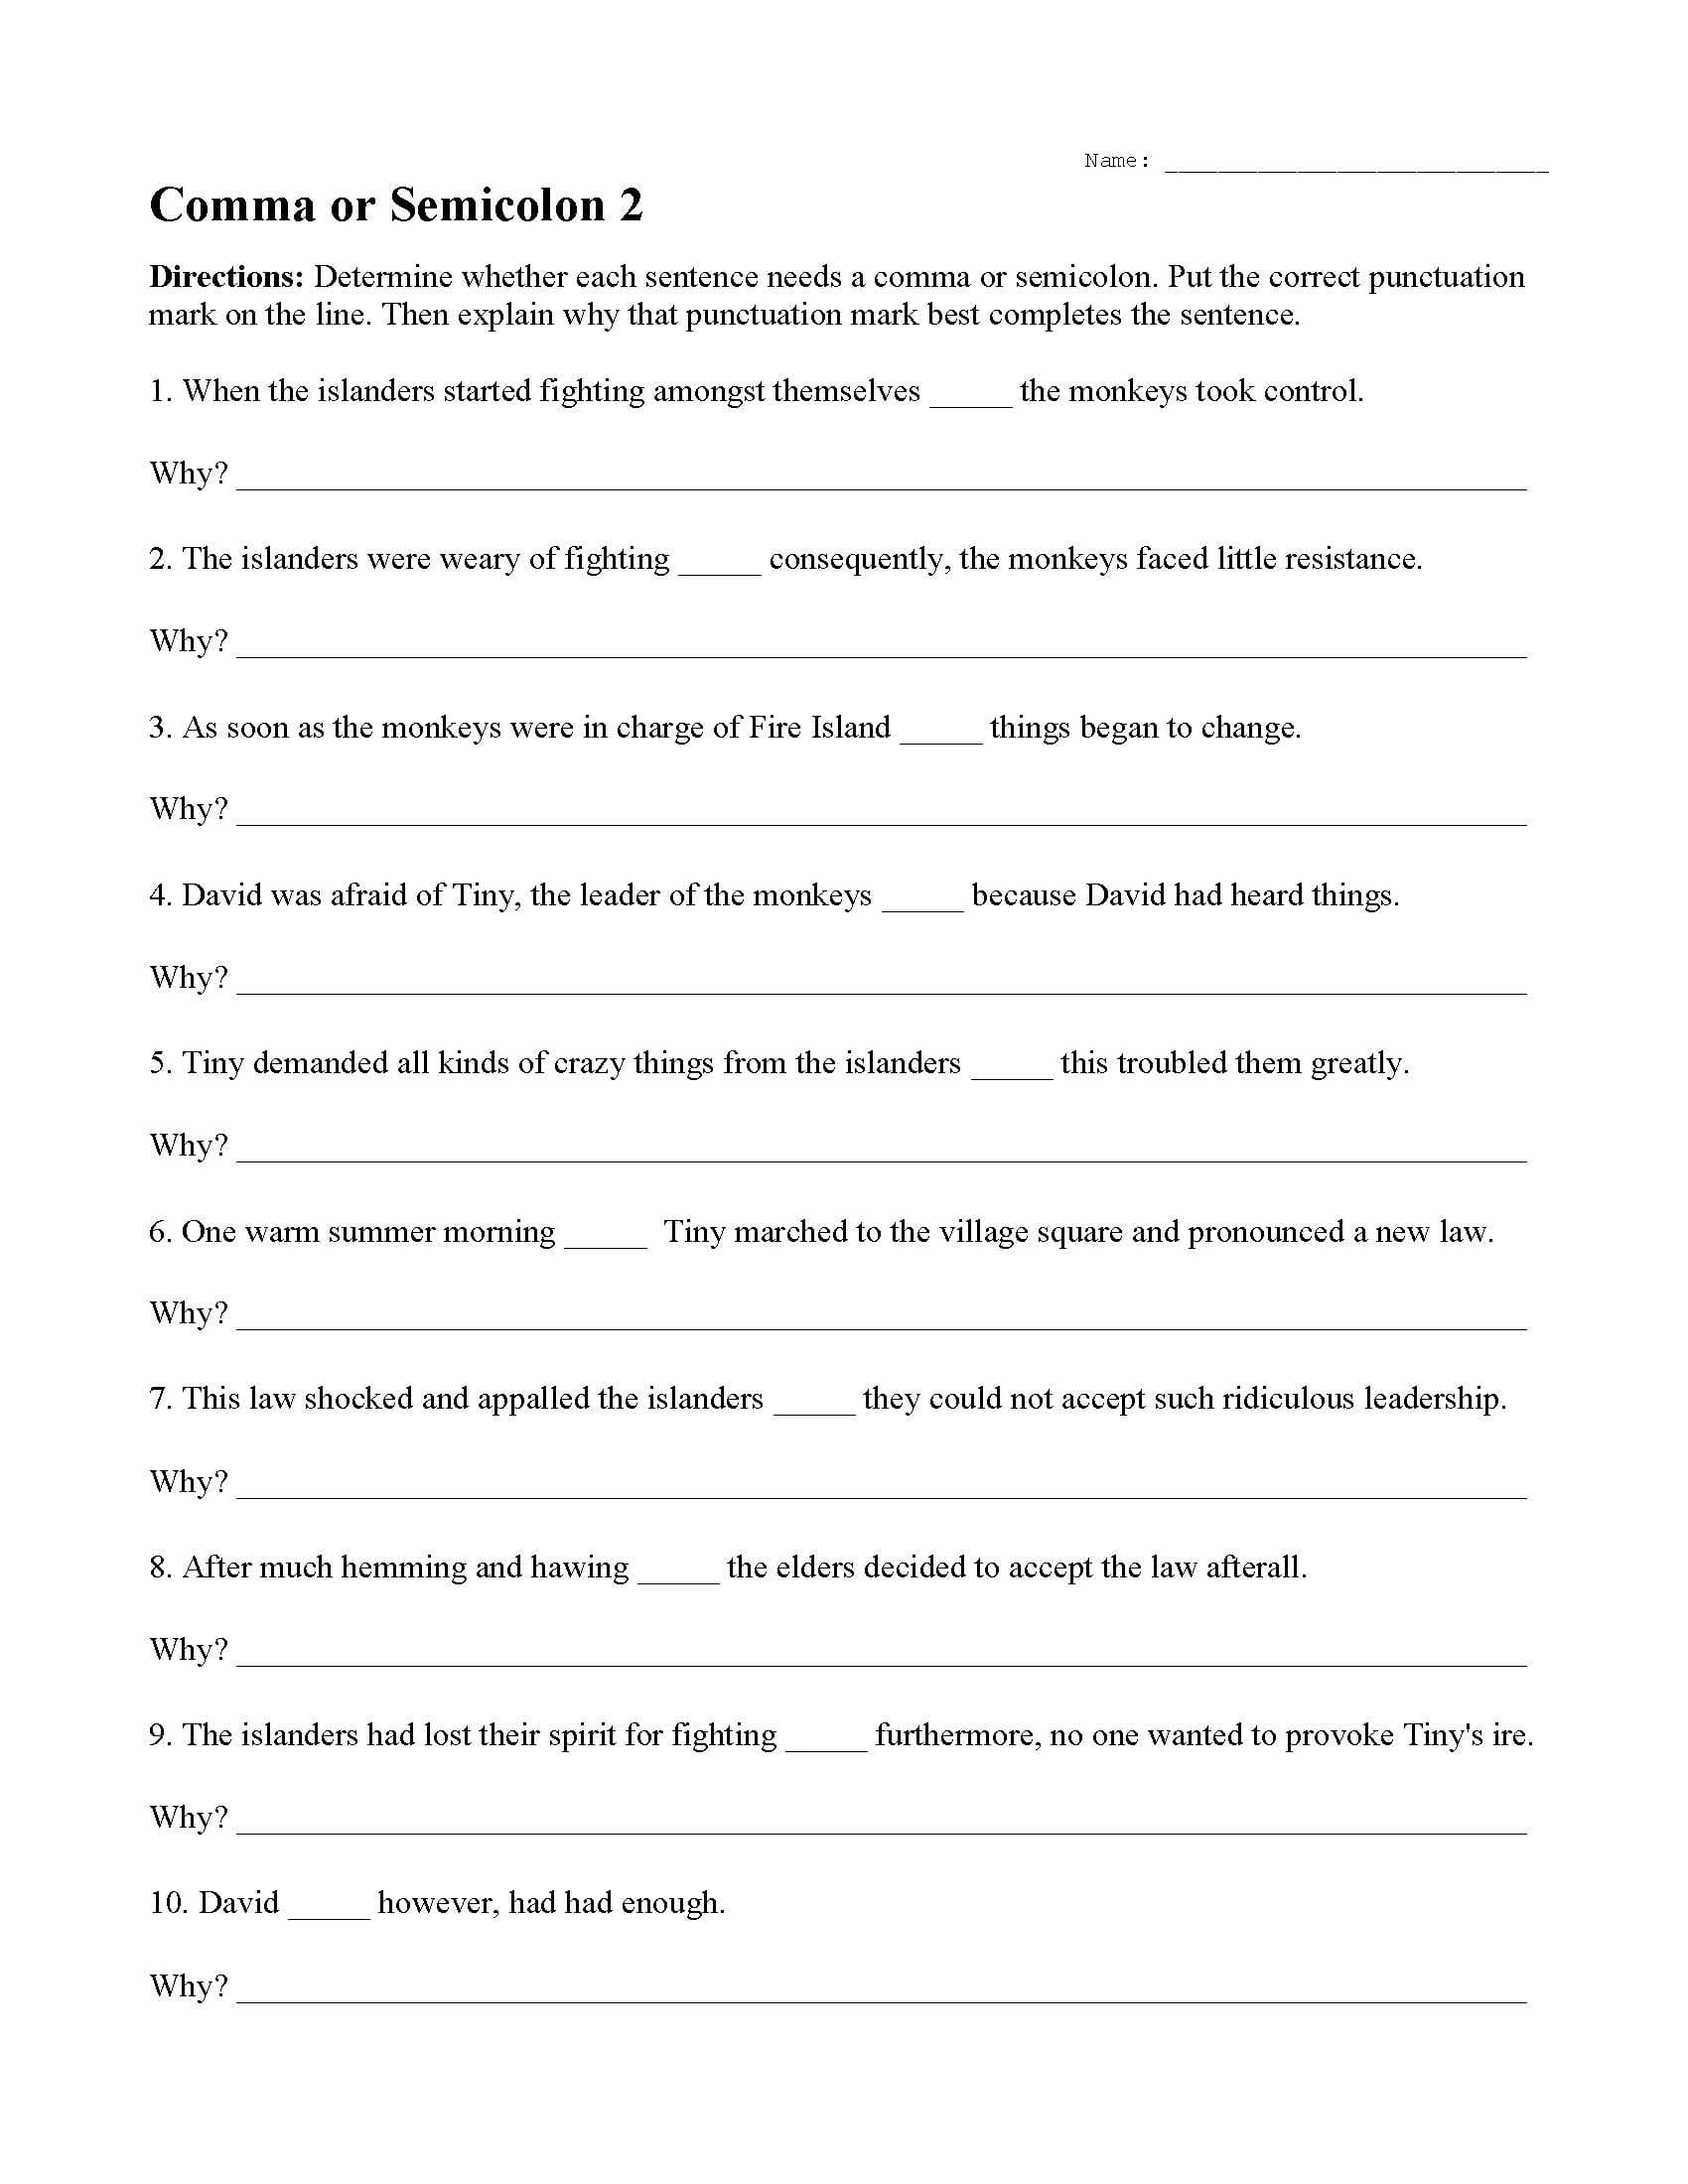 Commas Or Semicolons Worksheet 2 Preview